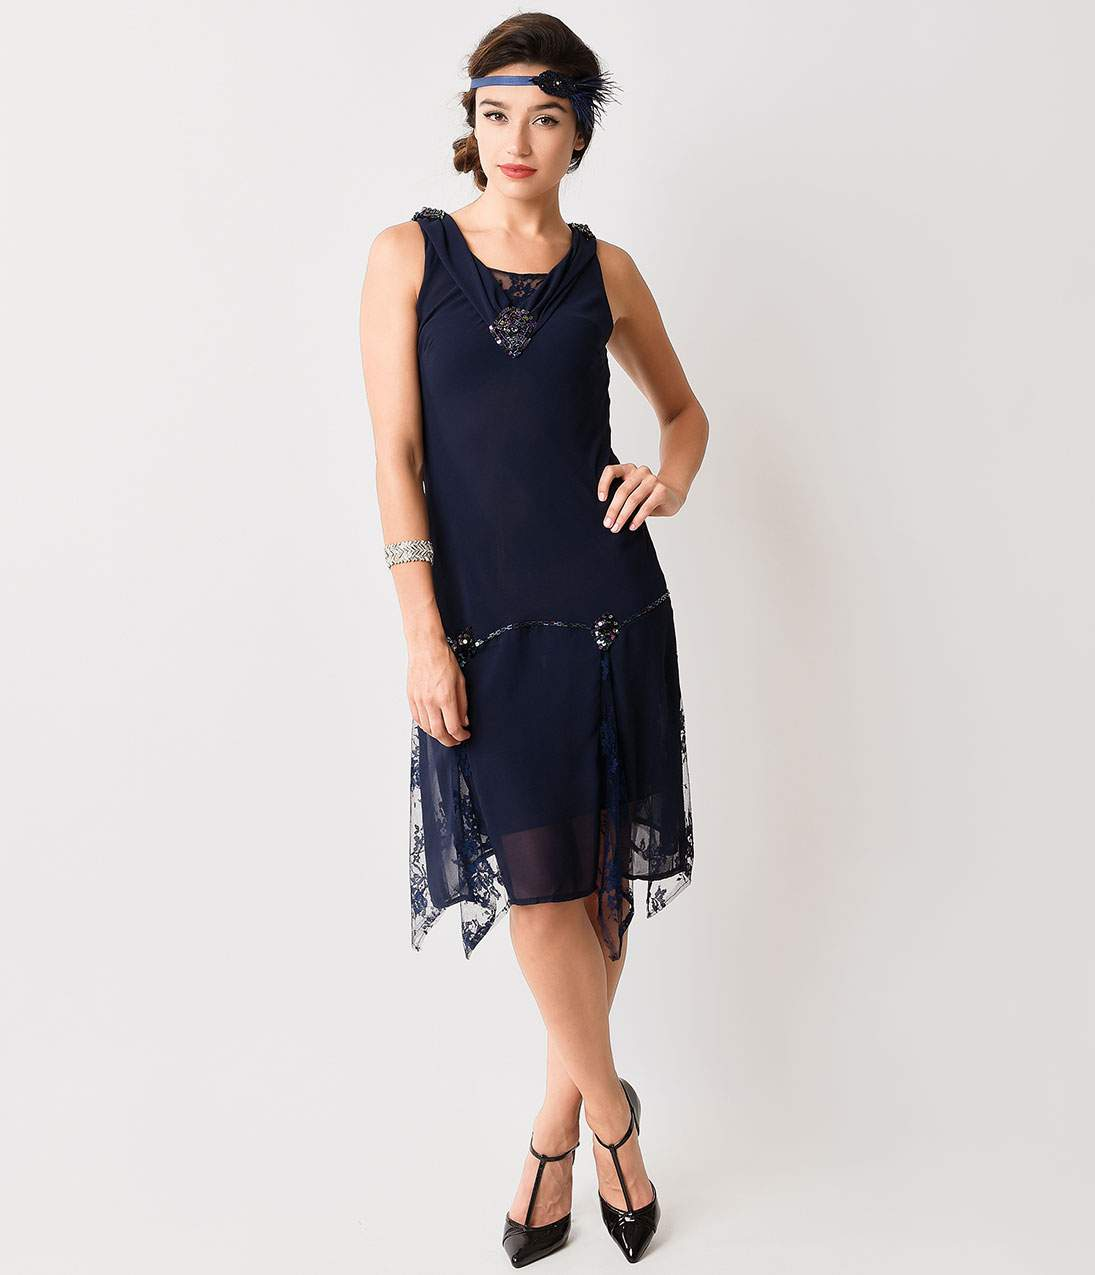 Downton Abbey Inspired Dresses Unique Vintage Navy Hemingway Flapper Dress $54.00 AT vintagedancer.com